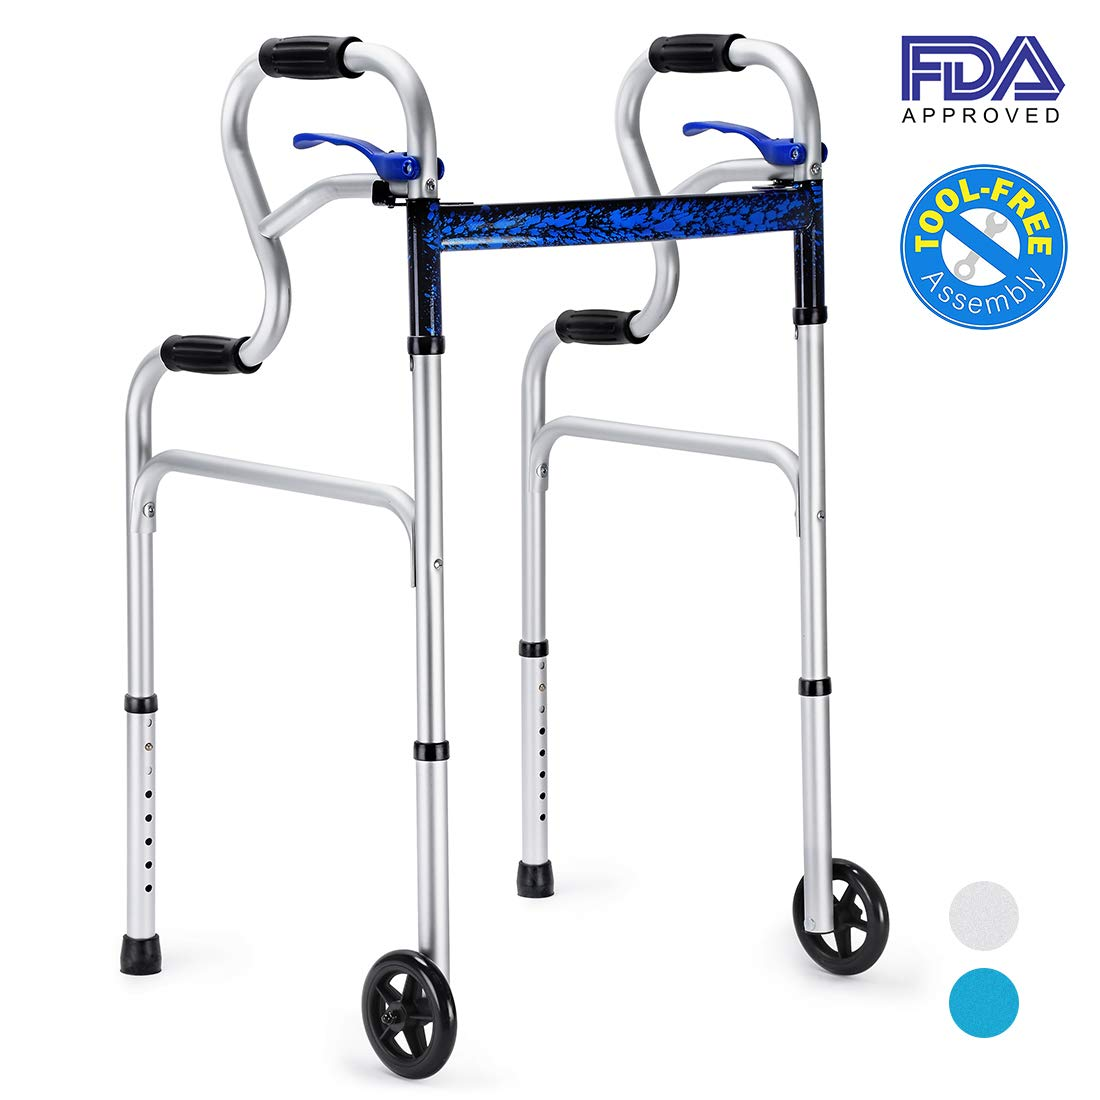 Health Line 3 in 1 Rising-Aid Folding Walker with Trigger Release and 5'' Wheels Supports up to 350 lbs, Compact Lightweight & Portable - w/Bonus Glides, Silver by HEALTH LINE MASSAGE PRODUCTS